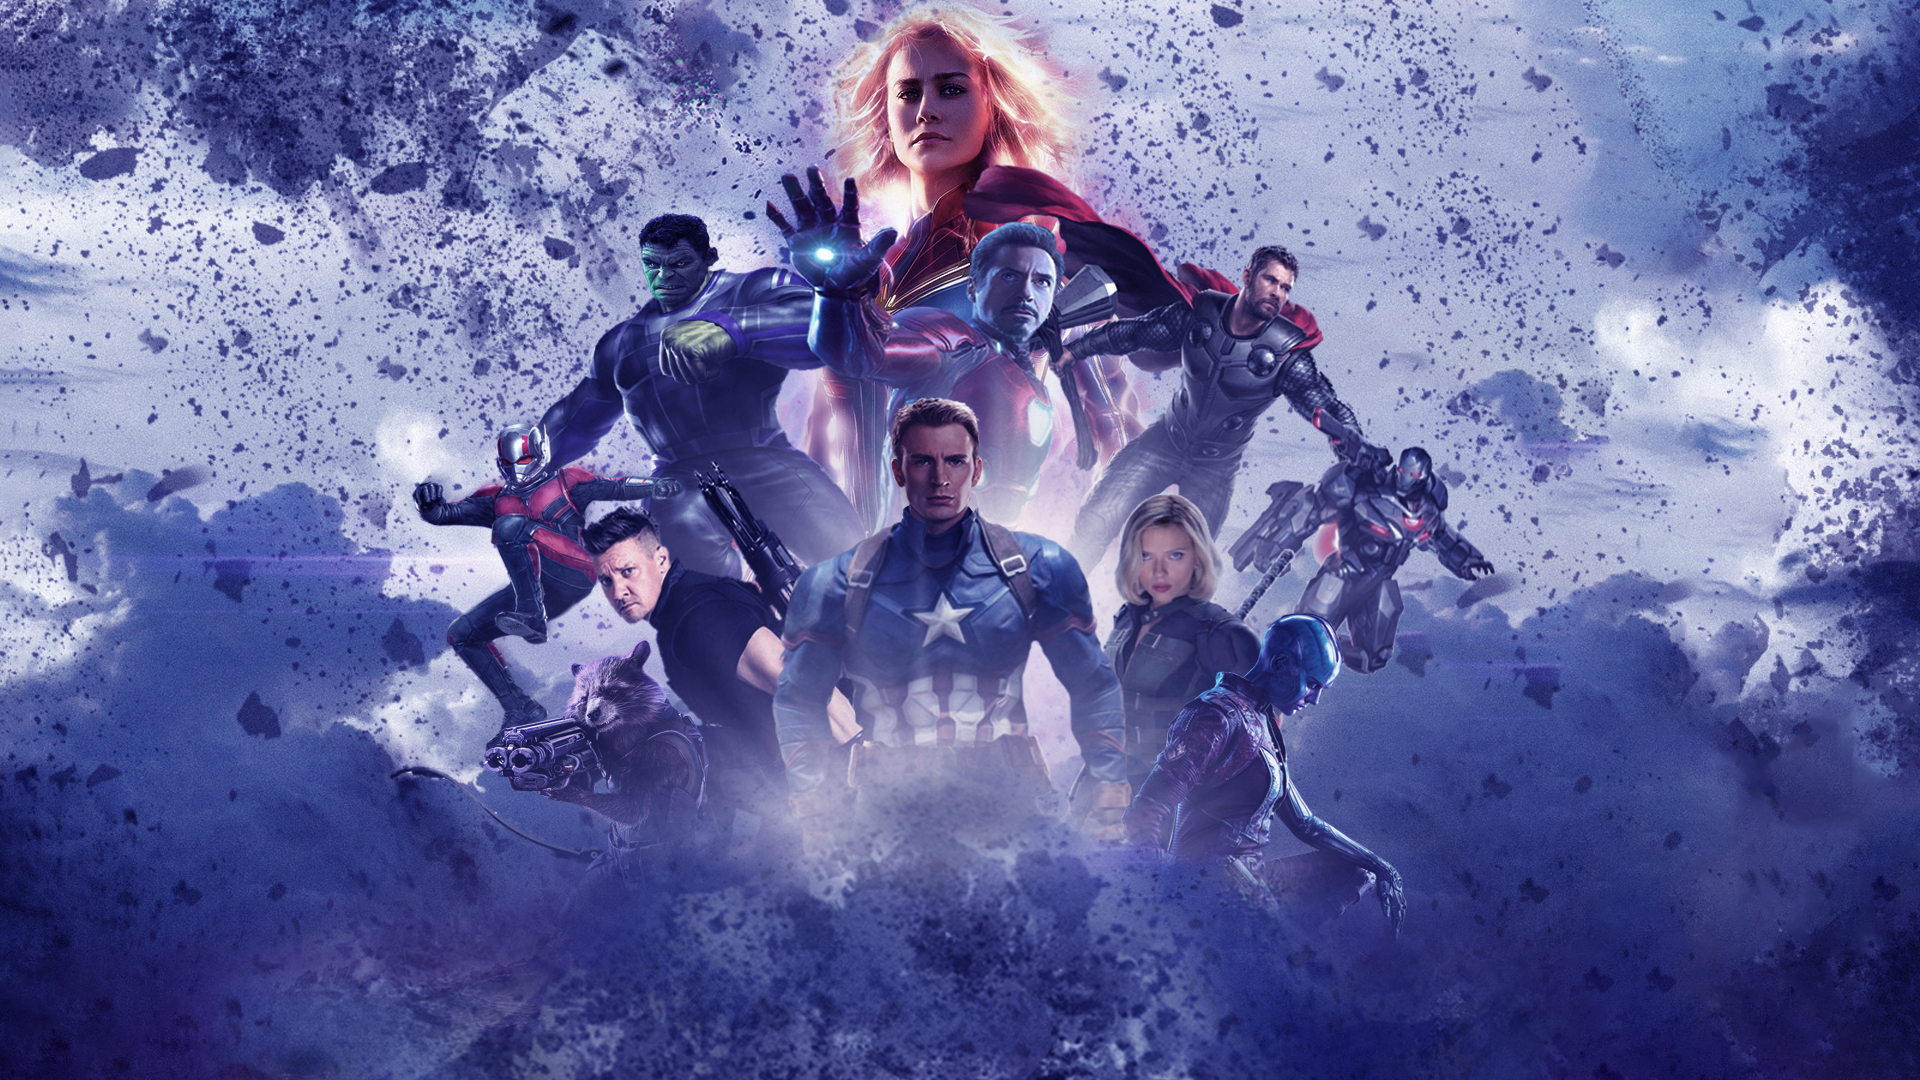 50 Incredible And Latest Avengers Endgame Hd Wallpapers 50